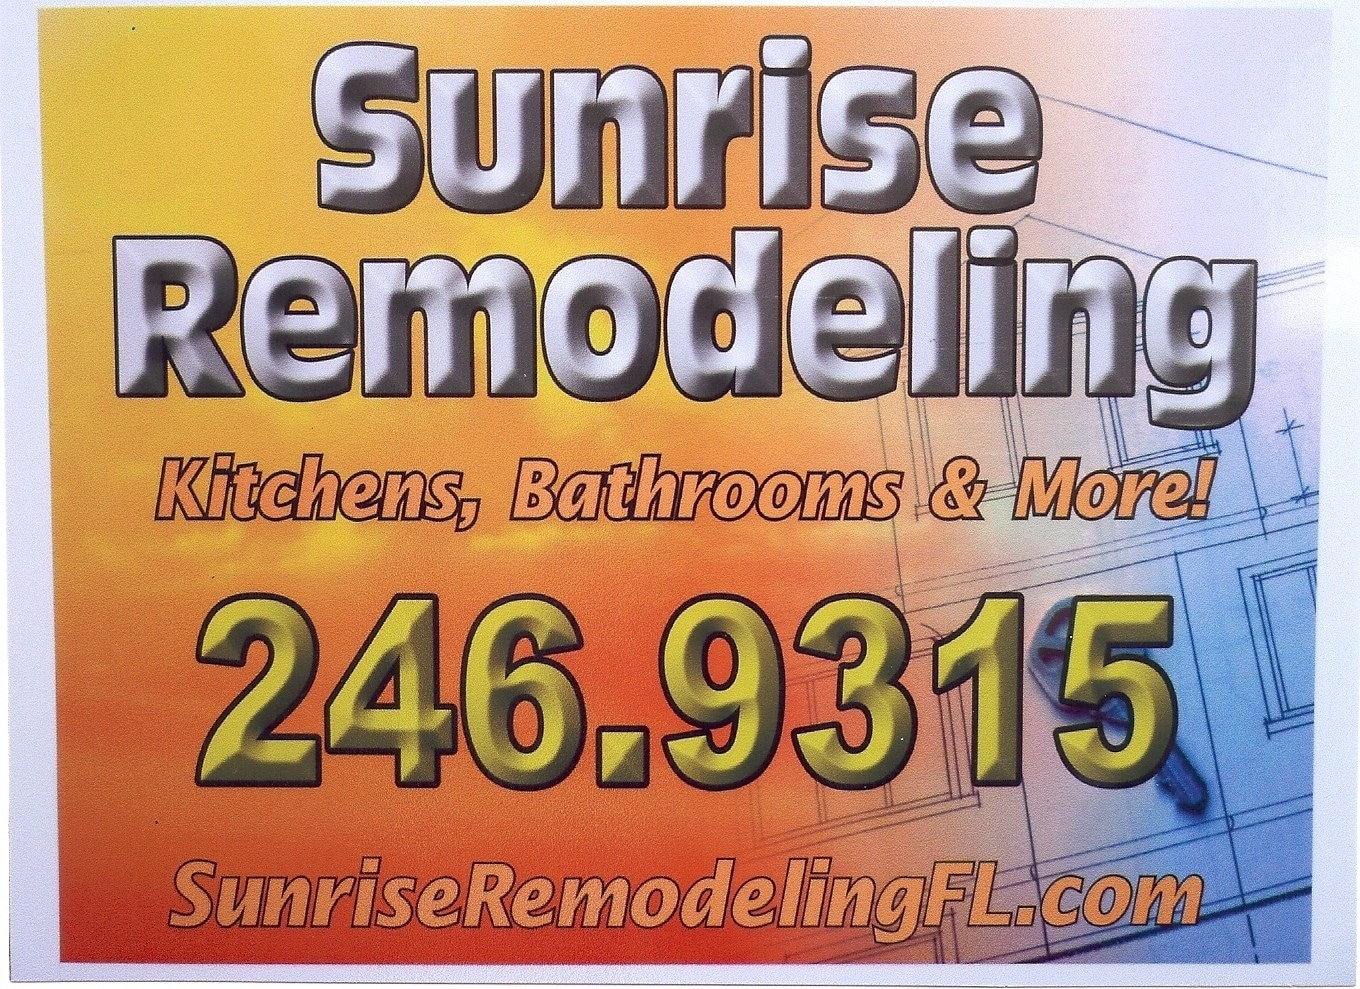 Sunrise Remodeling Inc